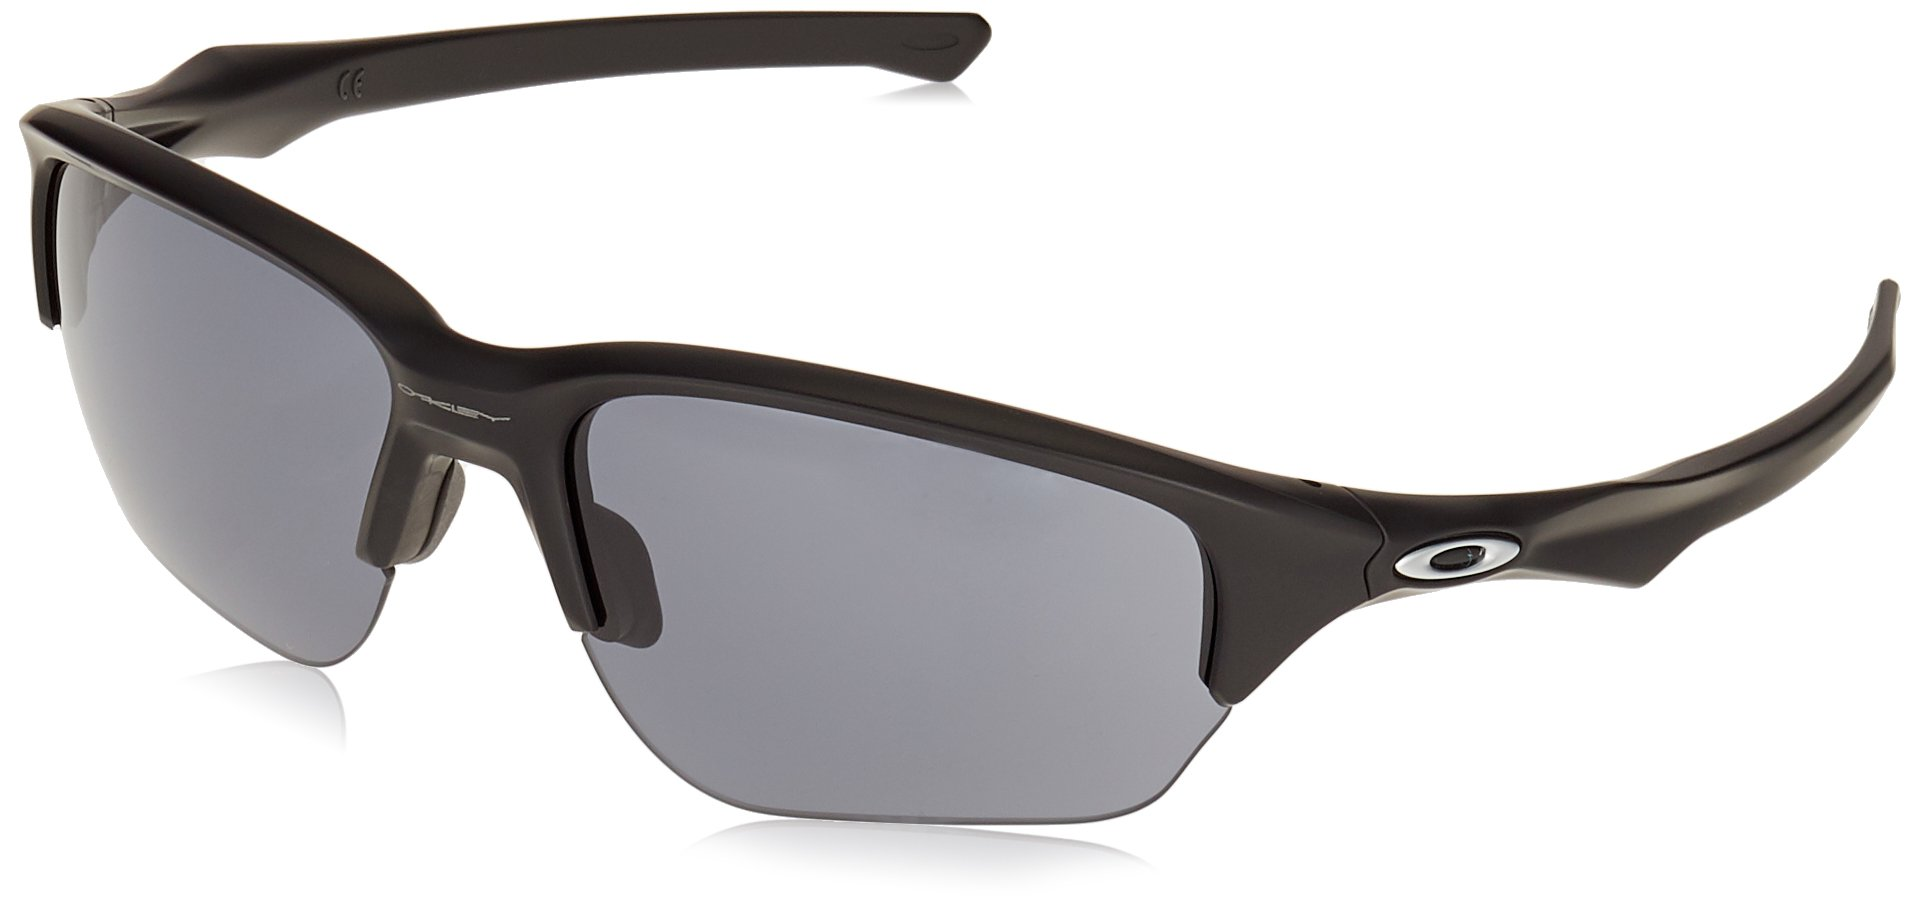 Oakley Men's Flak Beta Rectangular Sunglasses, Matte black, 64 mm